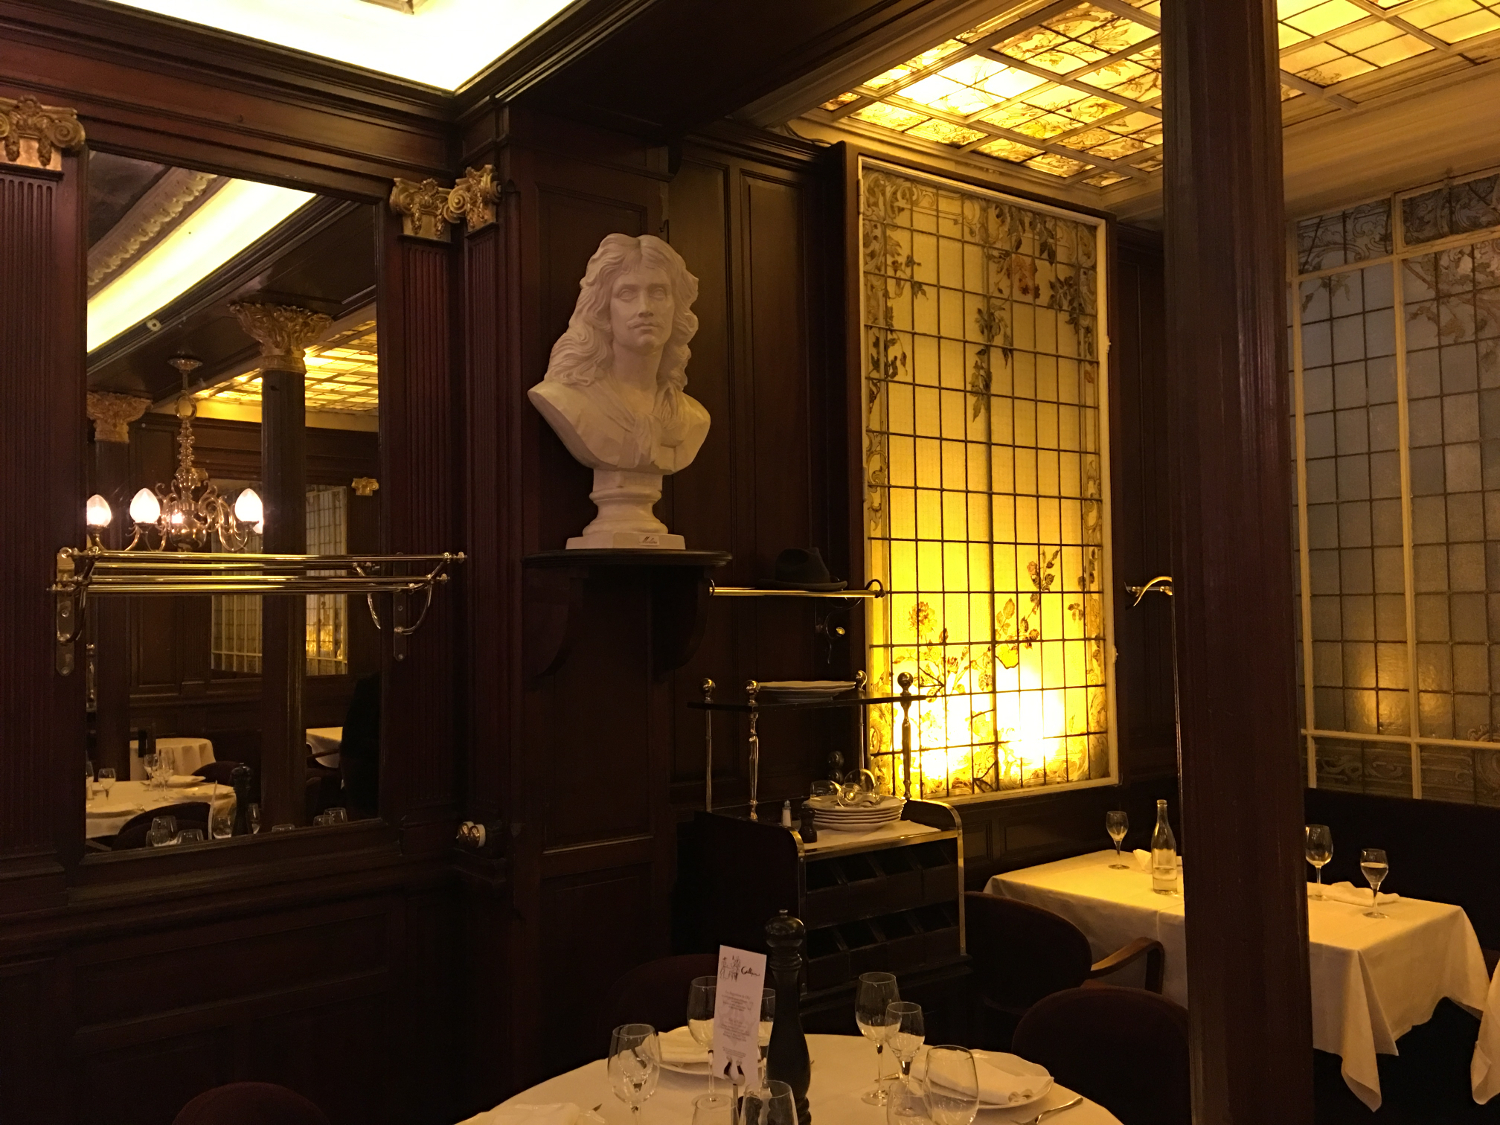 rocaille-blog-paris-restaurant-le-gallopin-where-to-eat-2